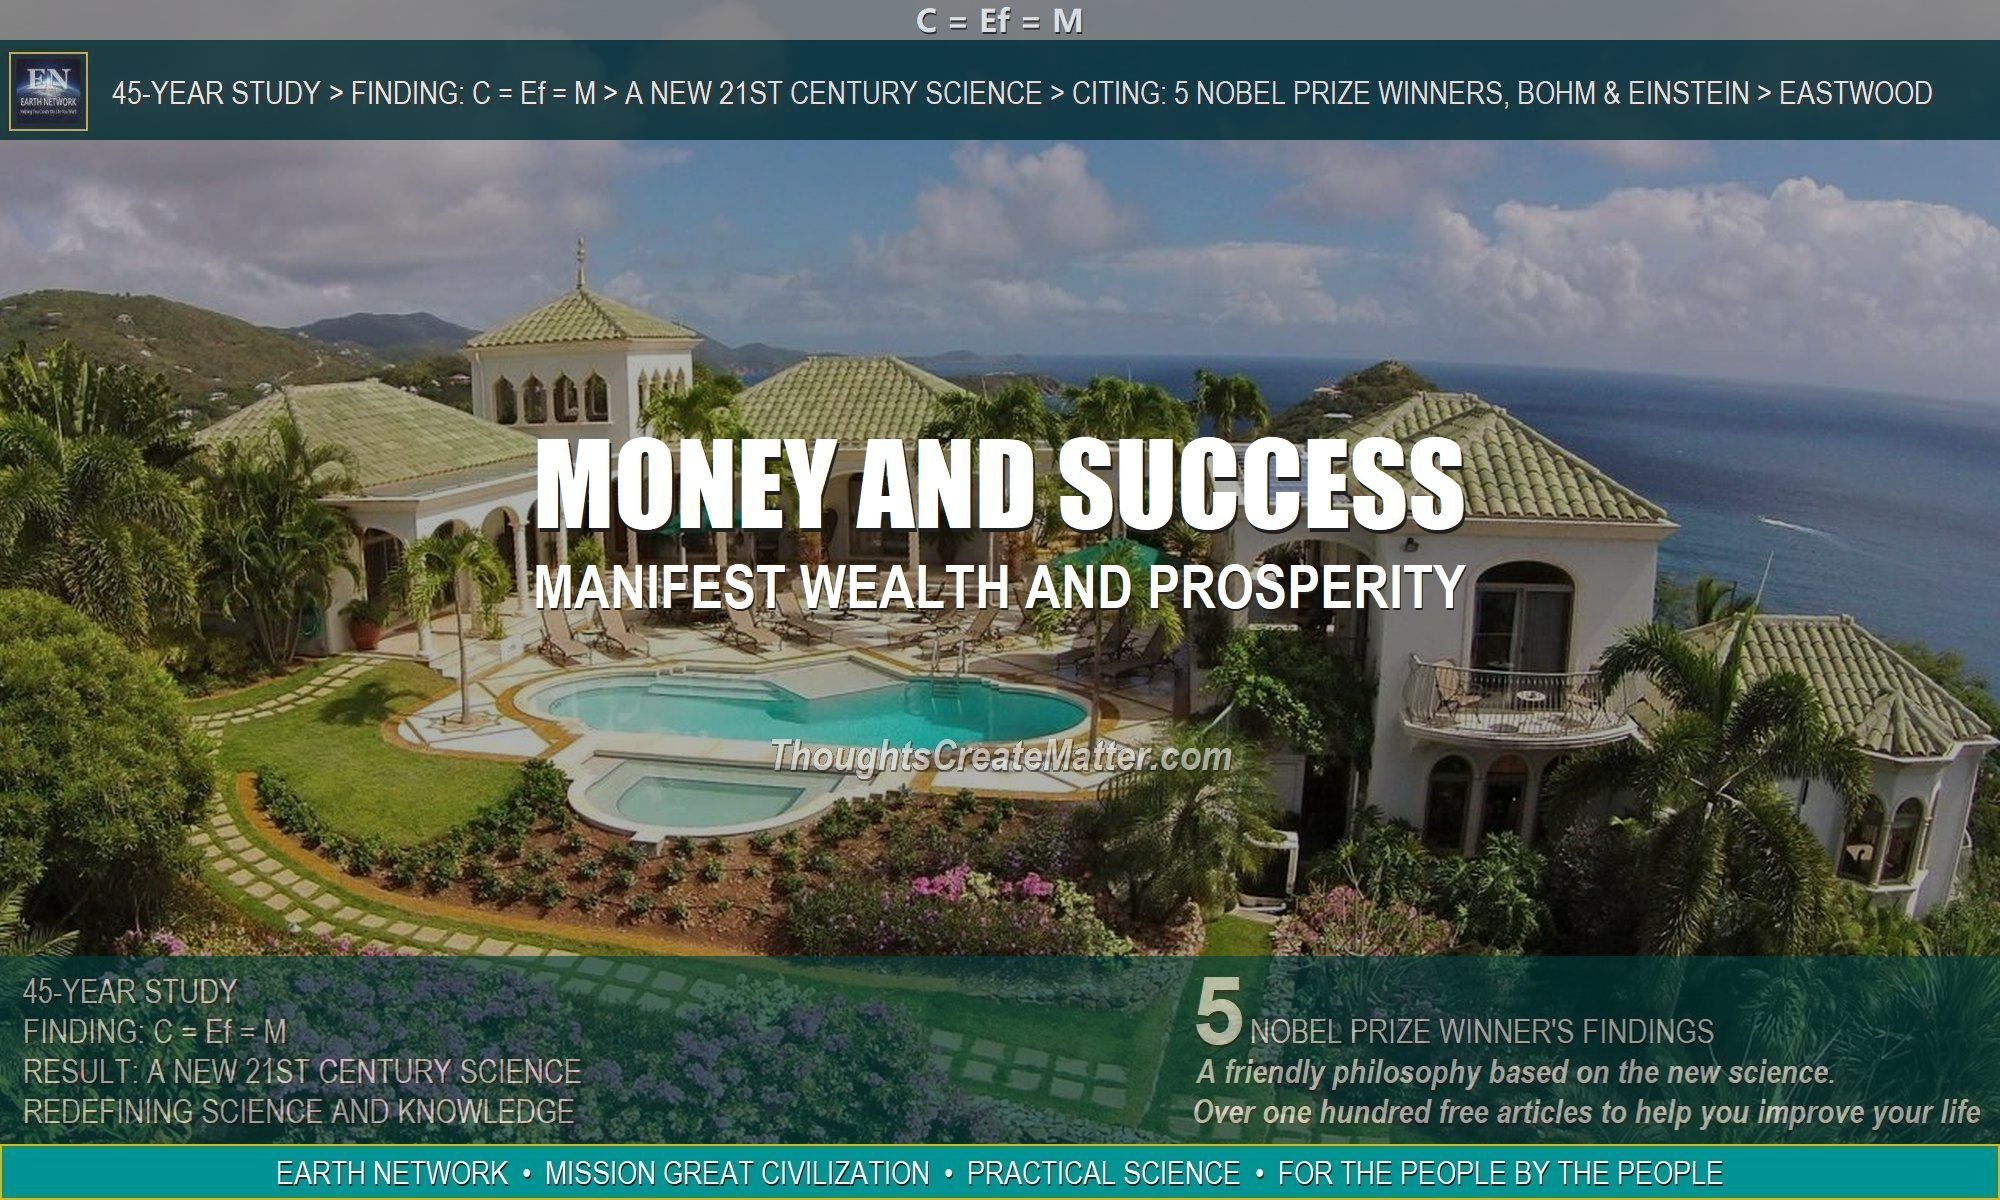 Estate on tropical island depicts how your thoughts can create money, success and wealth.